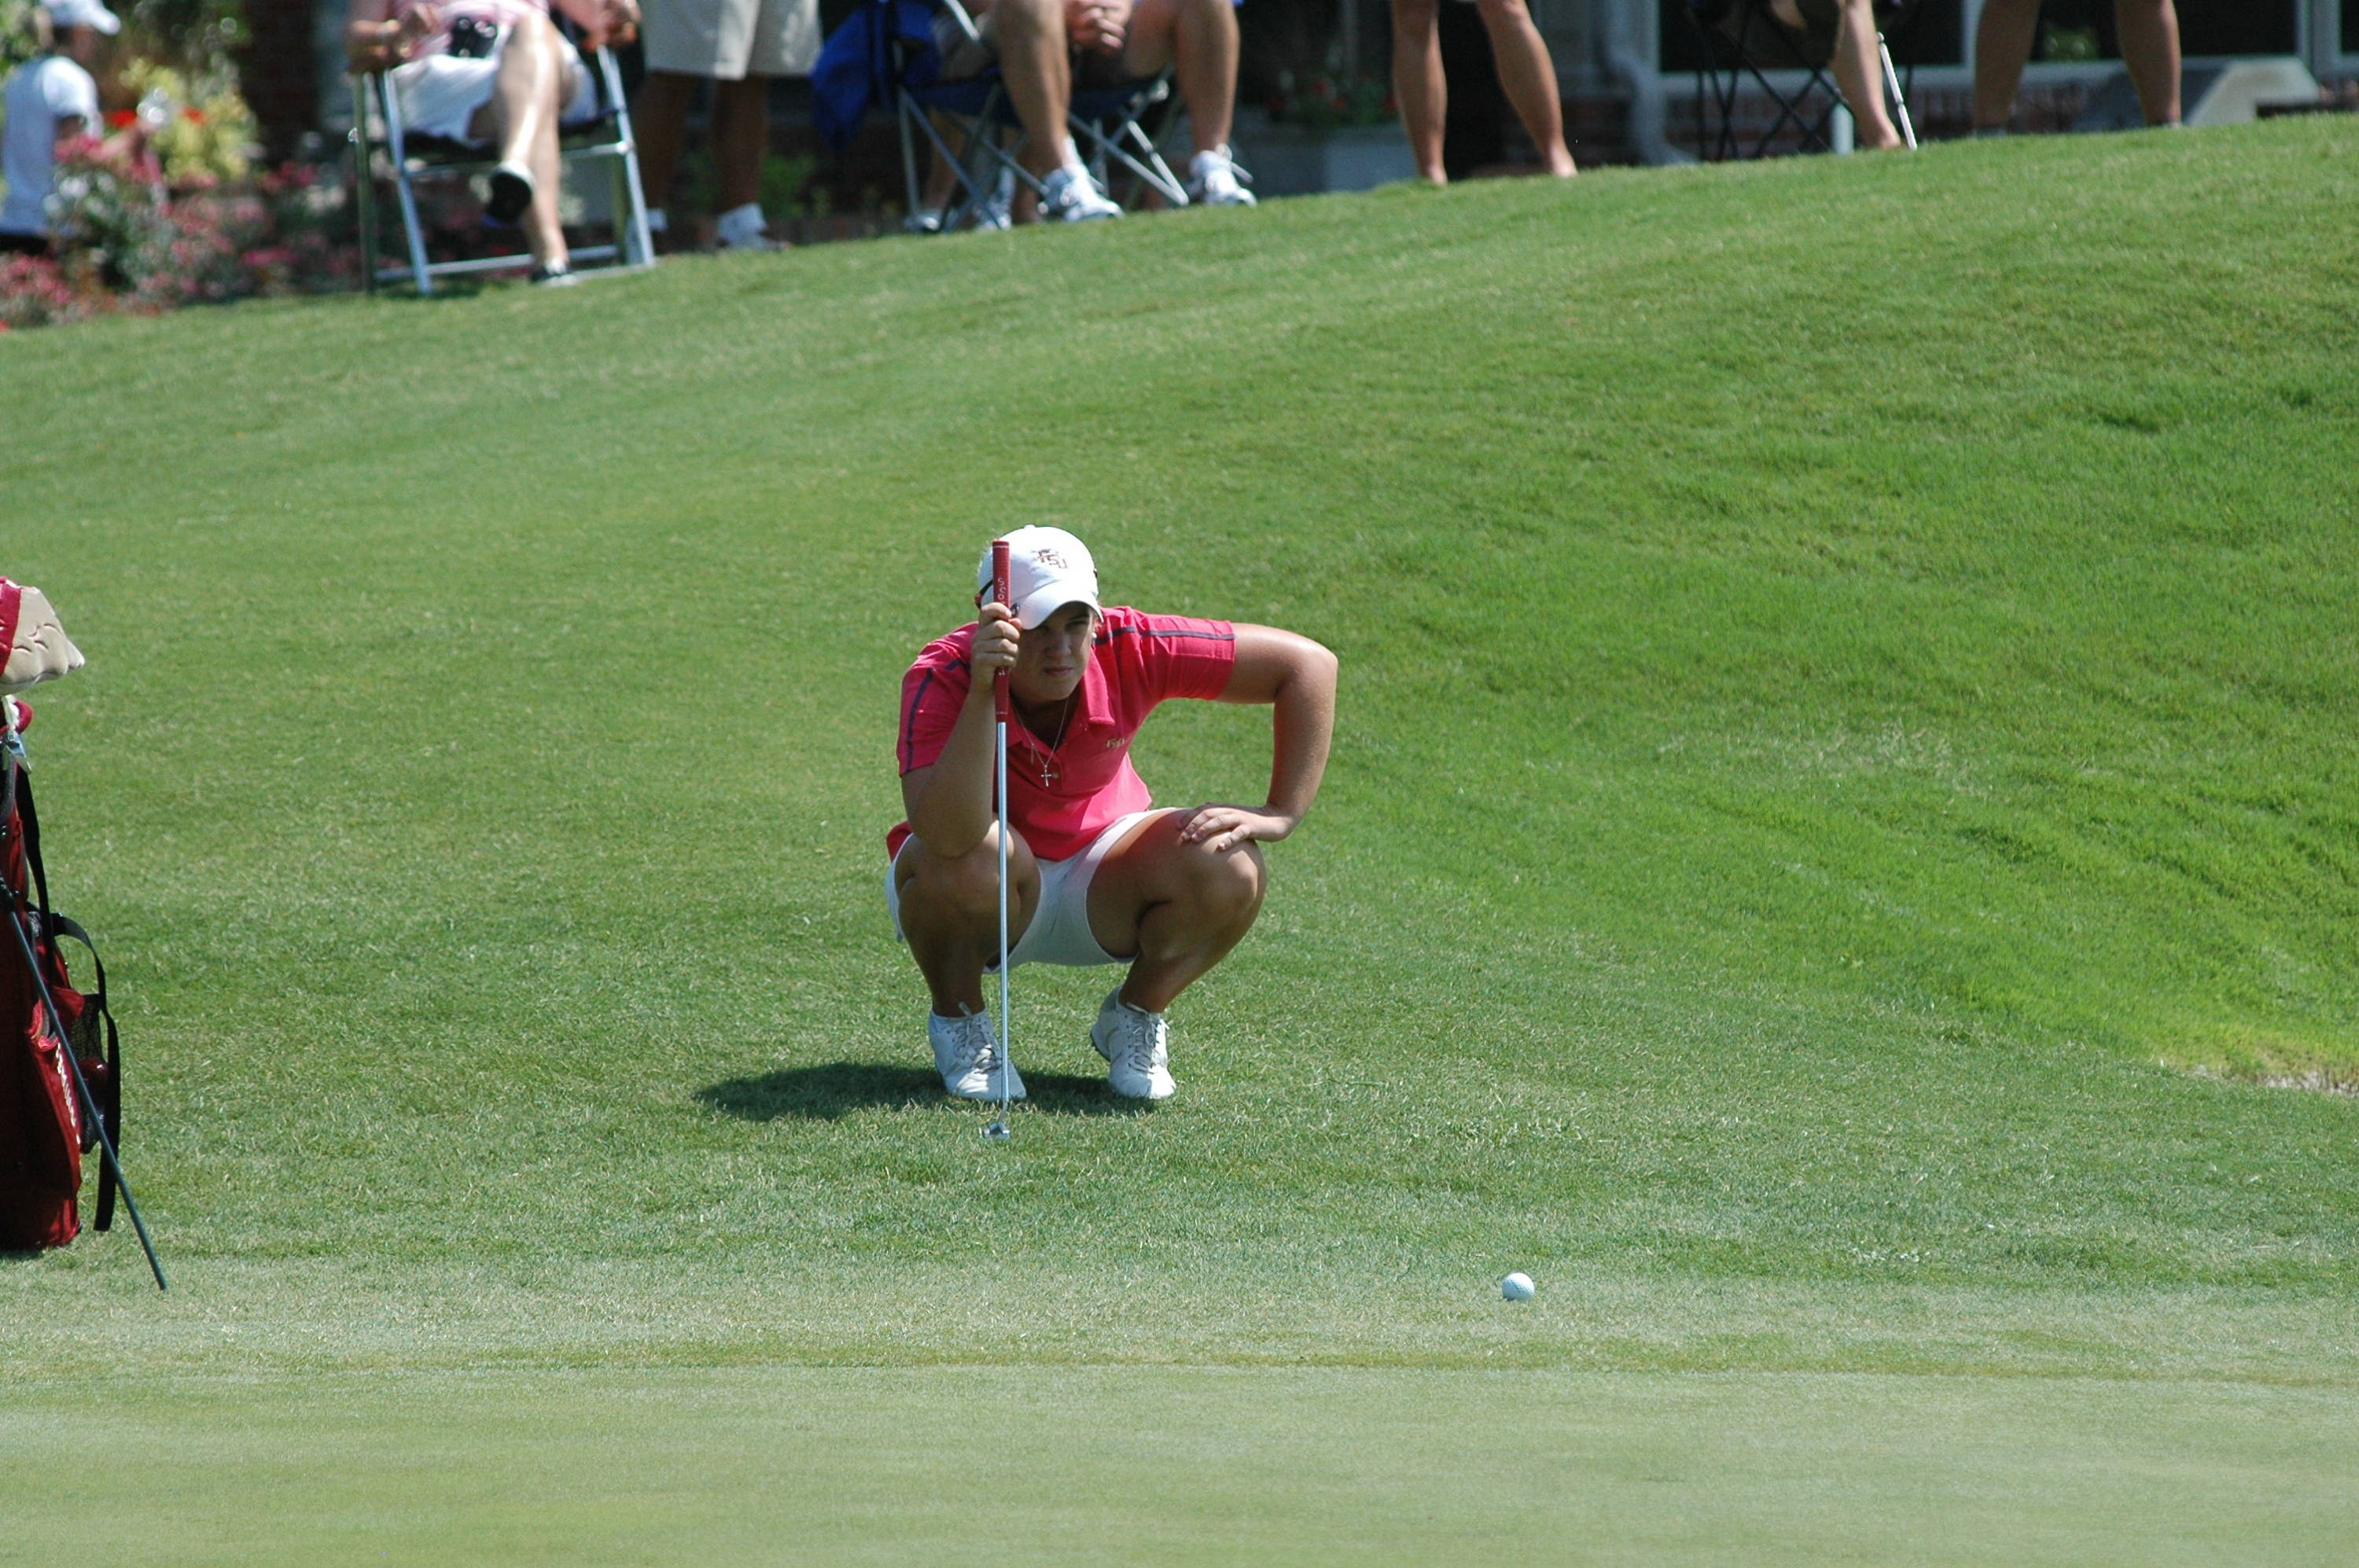 Lacey Agnew - NCAA Women's Golf 2010 Day 4